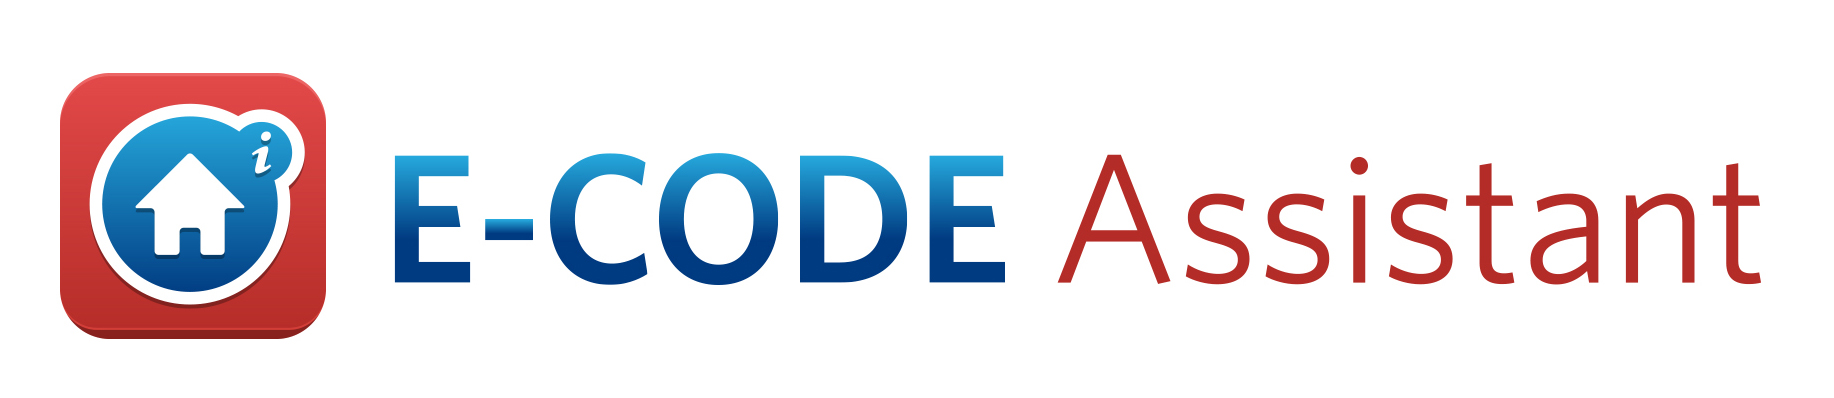 Penn E-Codes Assistant